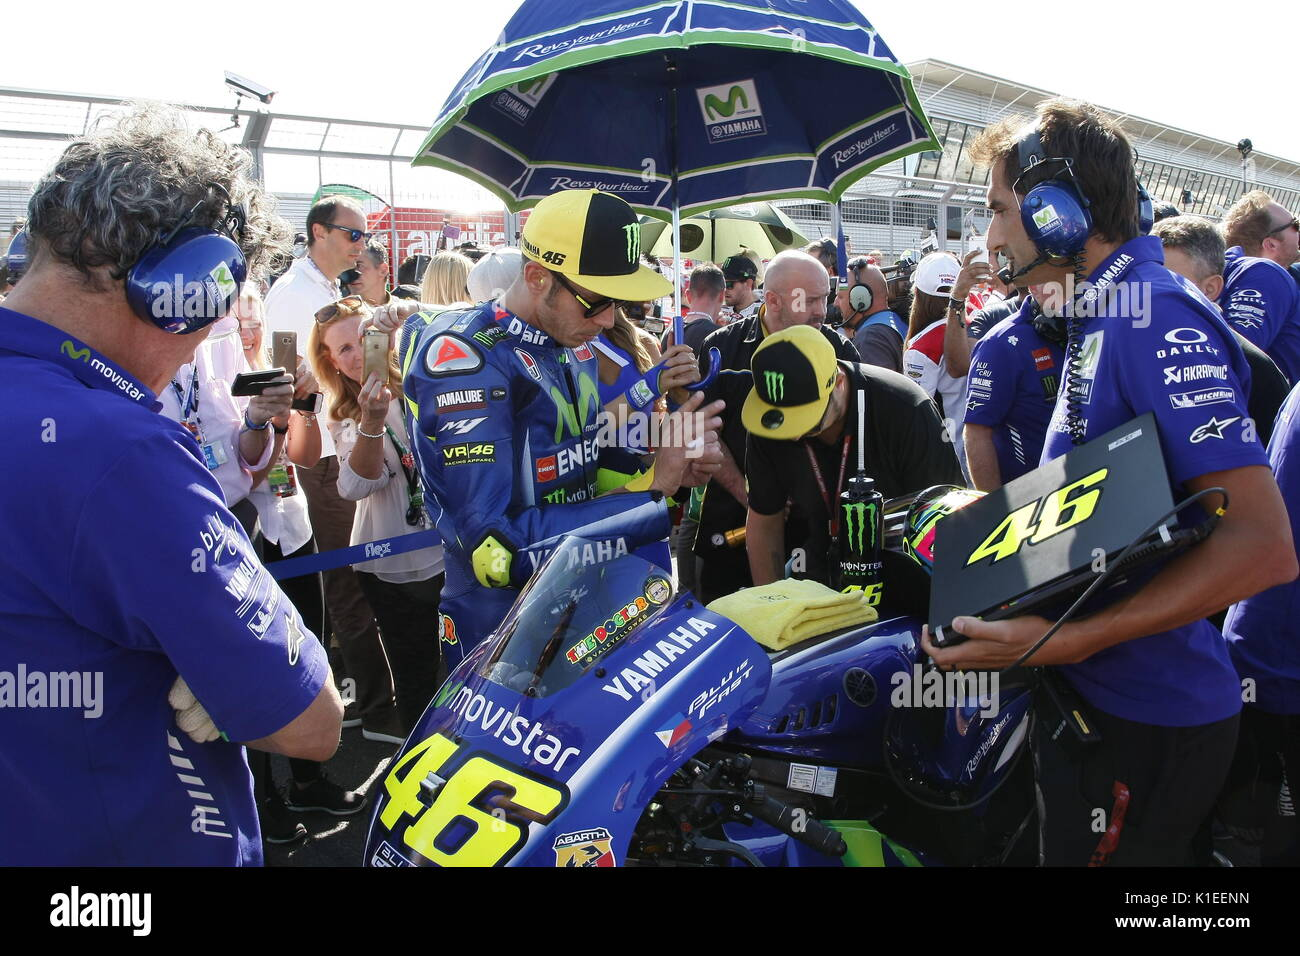 Silverstone, UK. 27th Aug, 2017.  Valentino Rossi prepares for the start of the OCTO British MotoGP with his Yamaha team. Credit: Motofoto/Alamy Live News - Stock Image